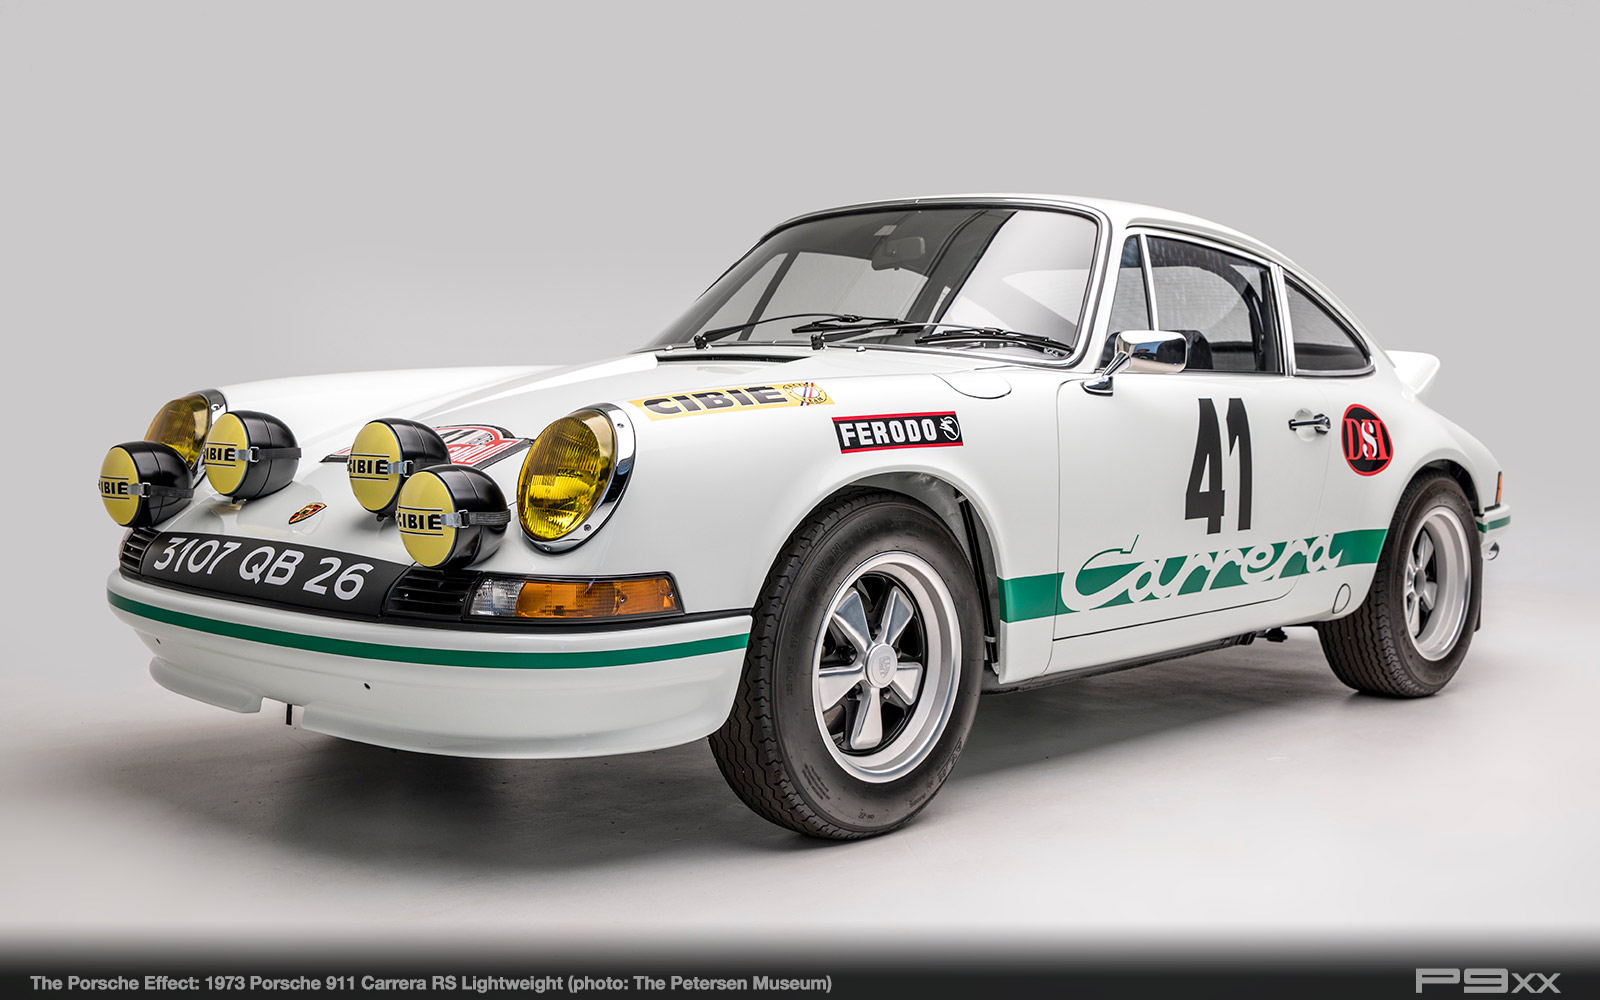 1973-911-Carrera-RS-Lightweight-Petersen-Automotive-Museum-The-Porsche-Effect-379